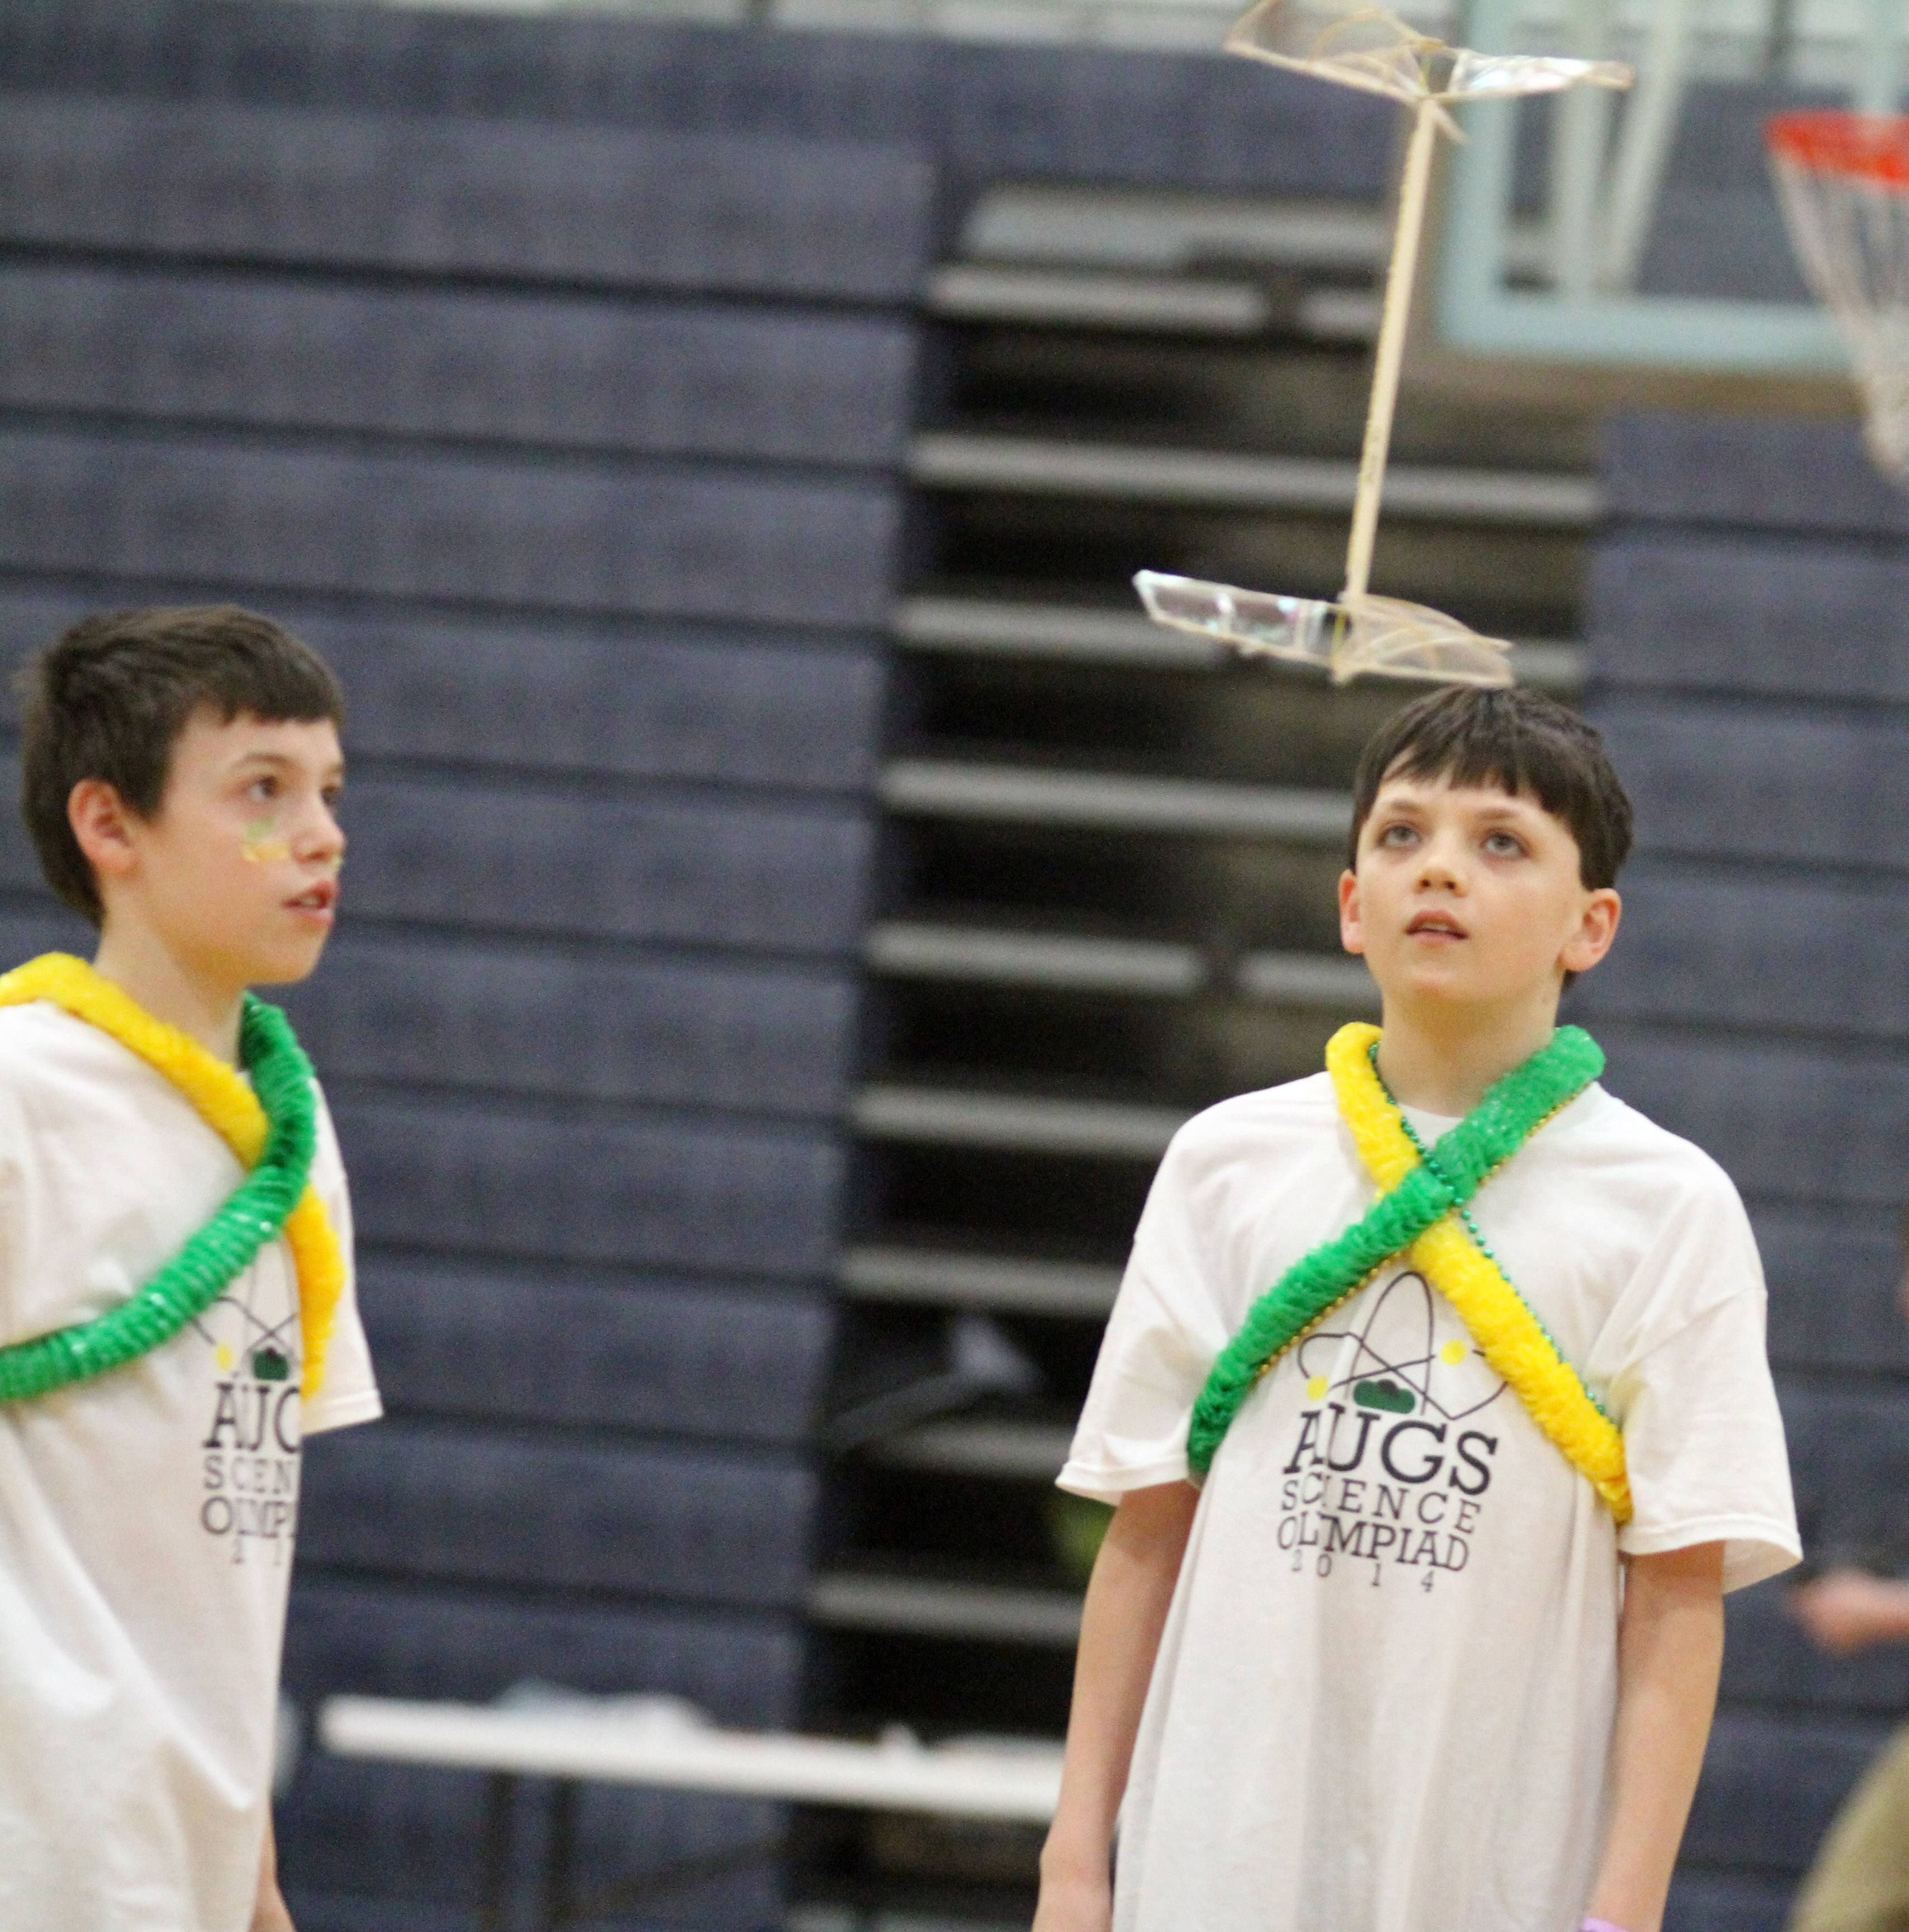 Antioch Upper Grade School students Josh Linck, left, and Christopher Penn watch their helicopter compete in the Grayslake Regional Science Olympiad on Saturday at College of Lake County. Teams vied for spots at the state competition in April.